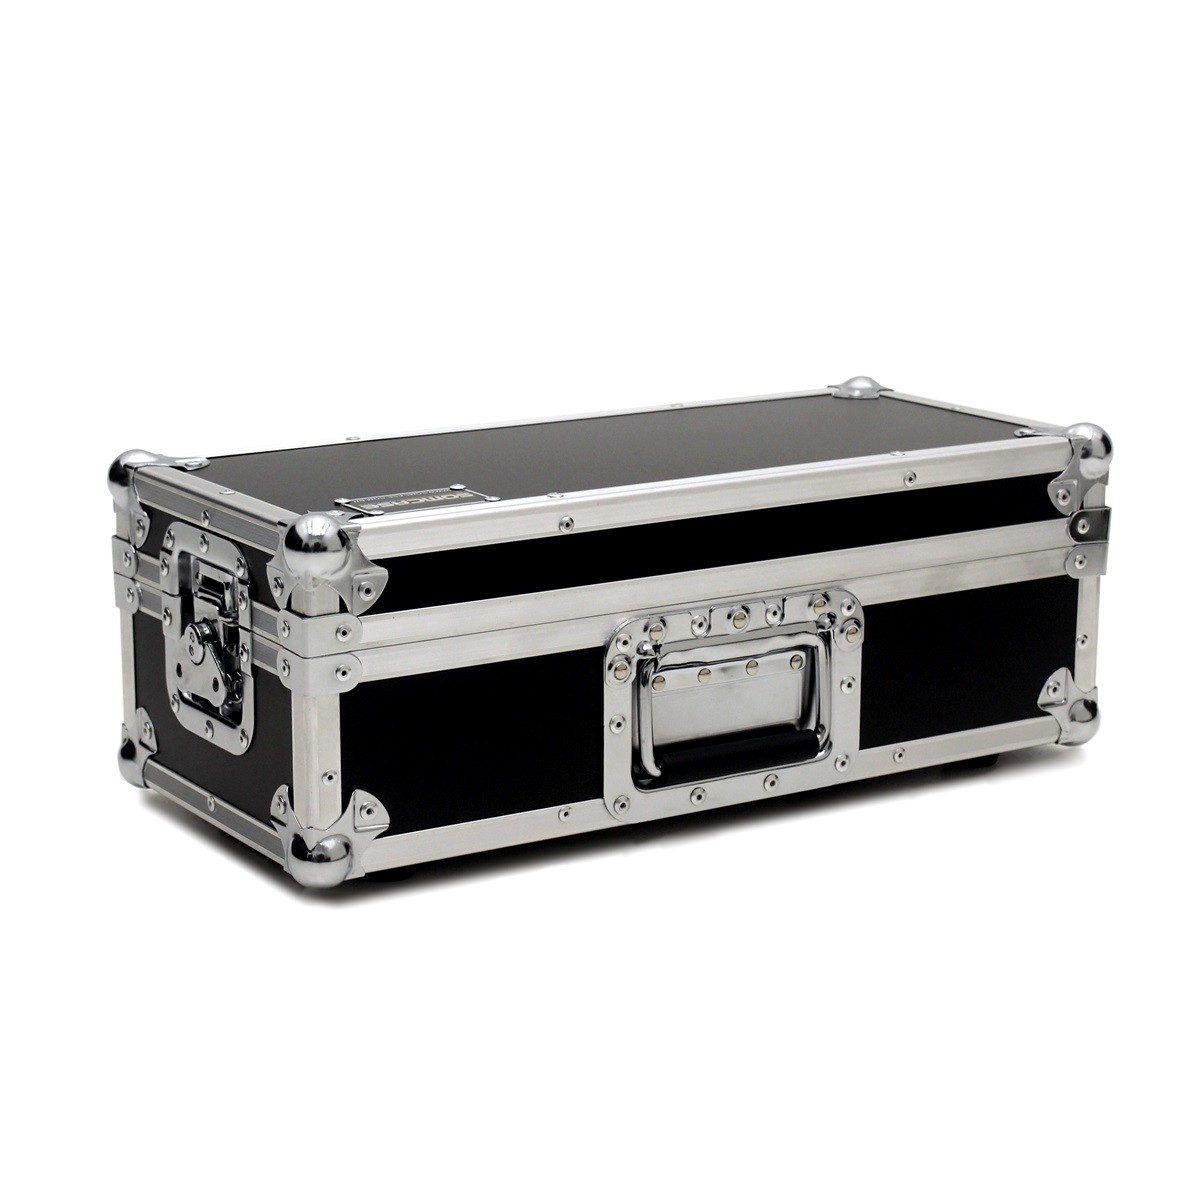 Hard Case Rack Mesa Soundcraft Mixer Ui12